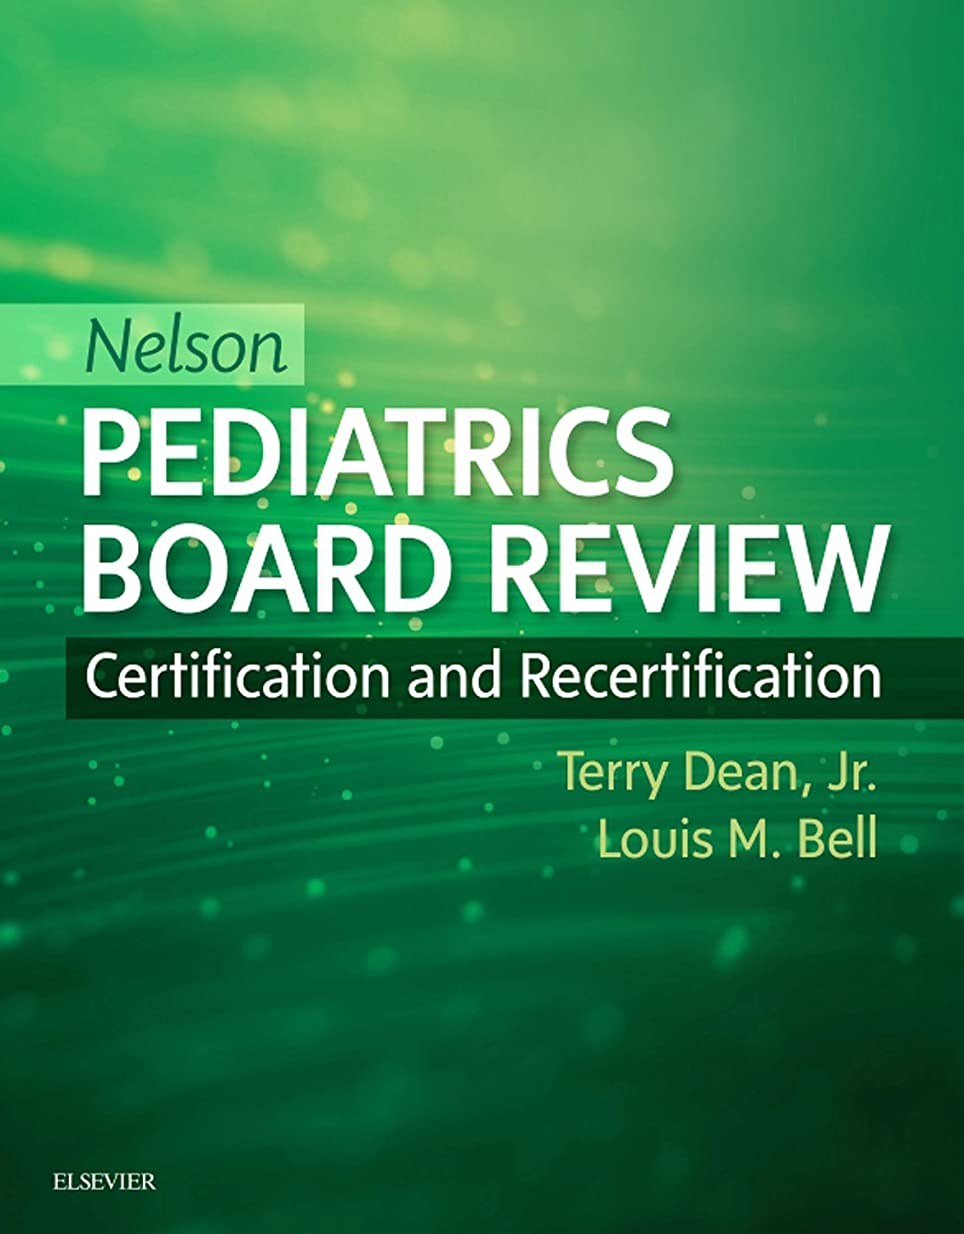 周術期クリップ蝶中古Nelson Pediatrics Board Review E-Book: Certification and Recertification (English Edition)